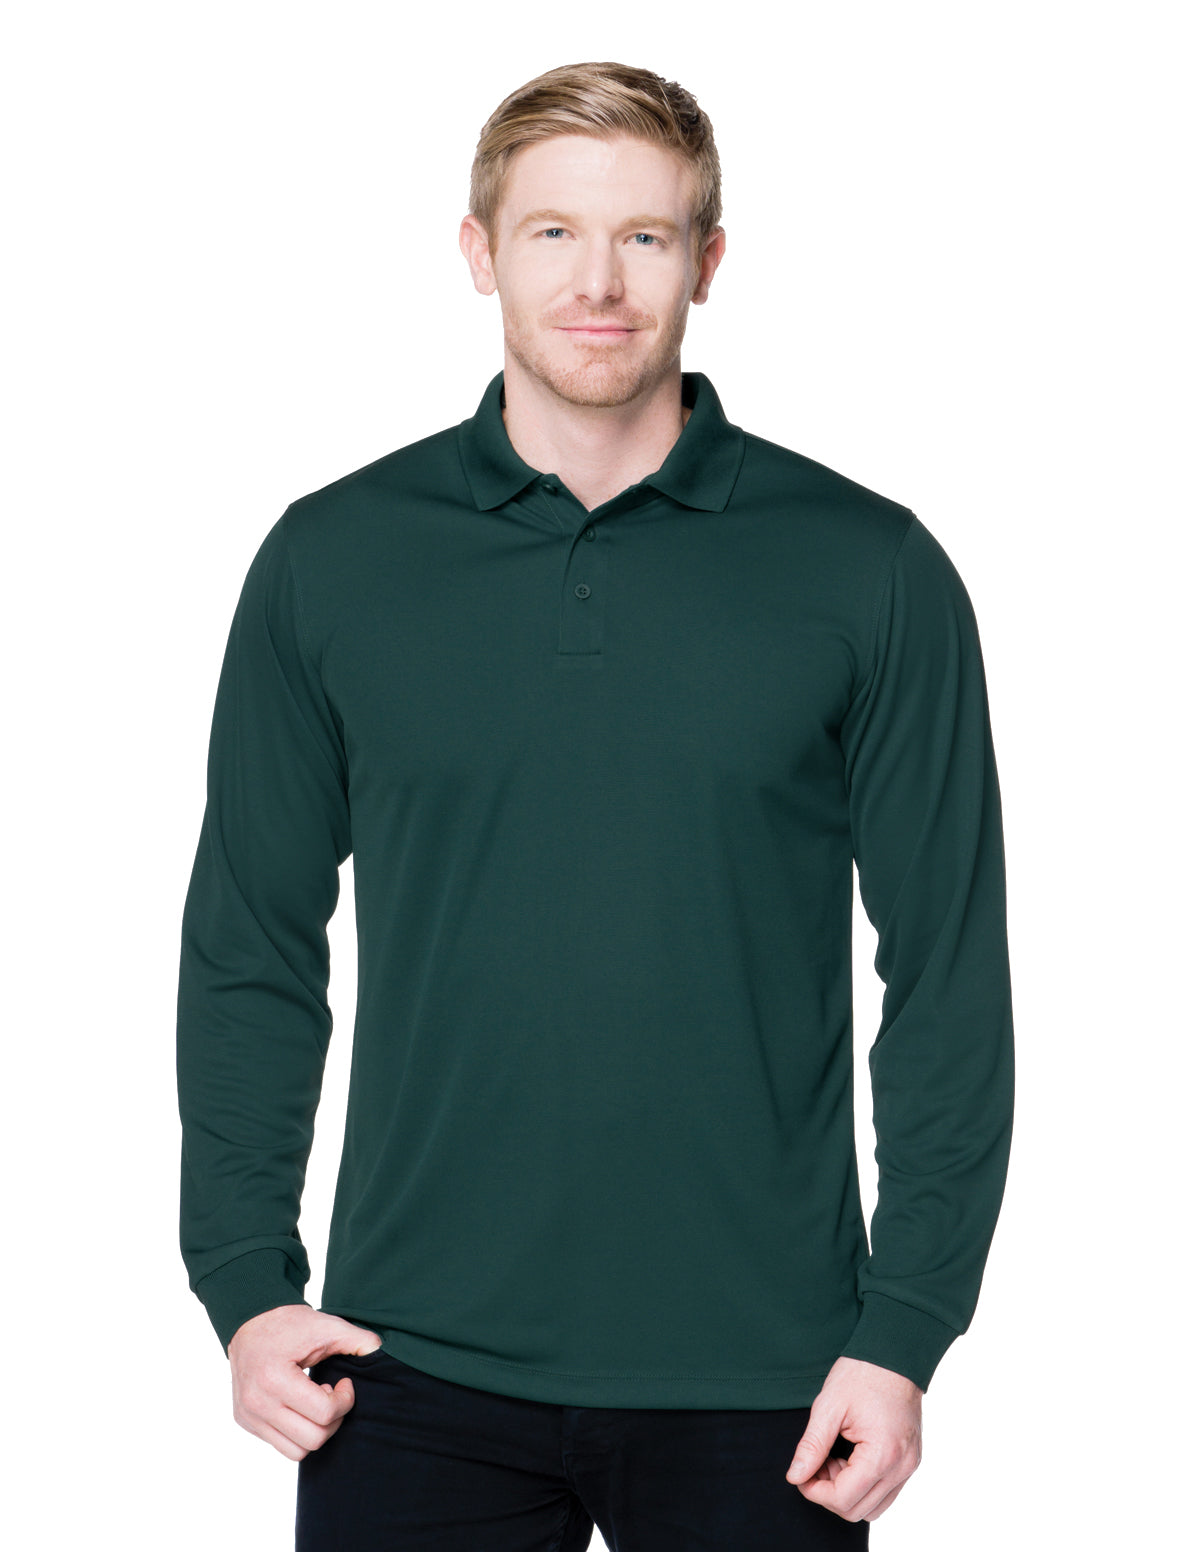 Vital Long Sleeve-5 Oz 100% Polyester Mini-Pique Long Sleeve Polo Featuring Moisture-Wicking